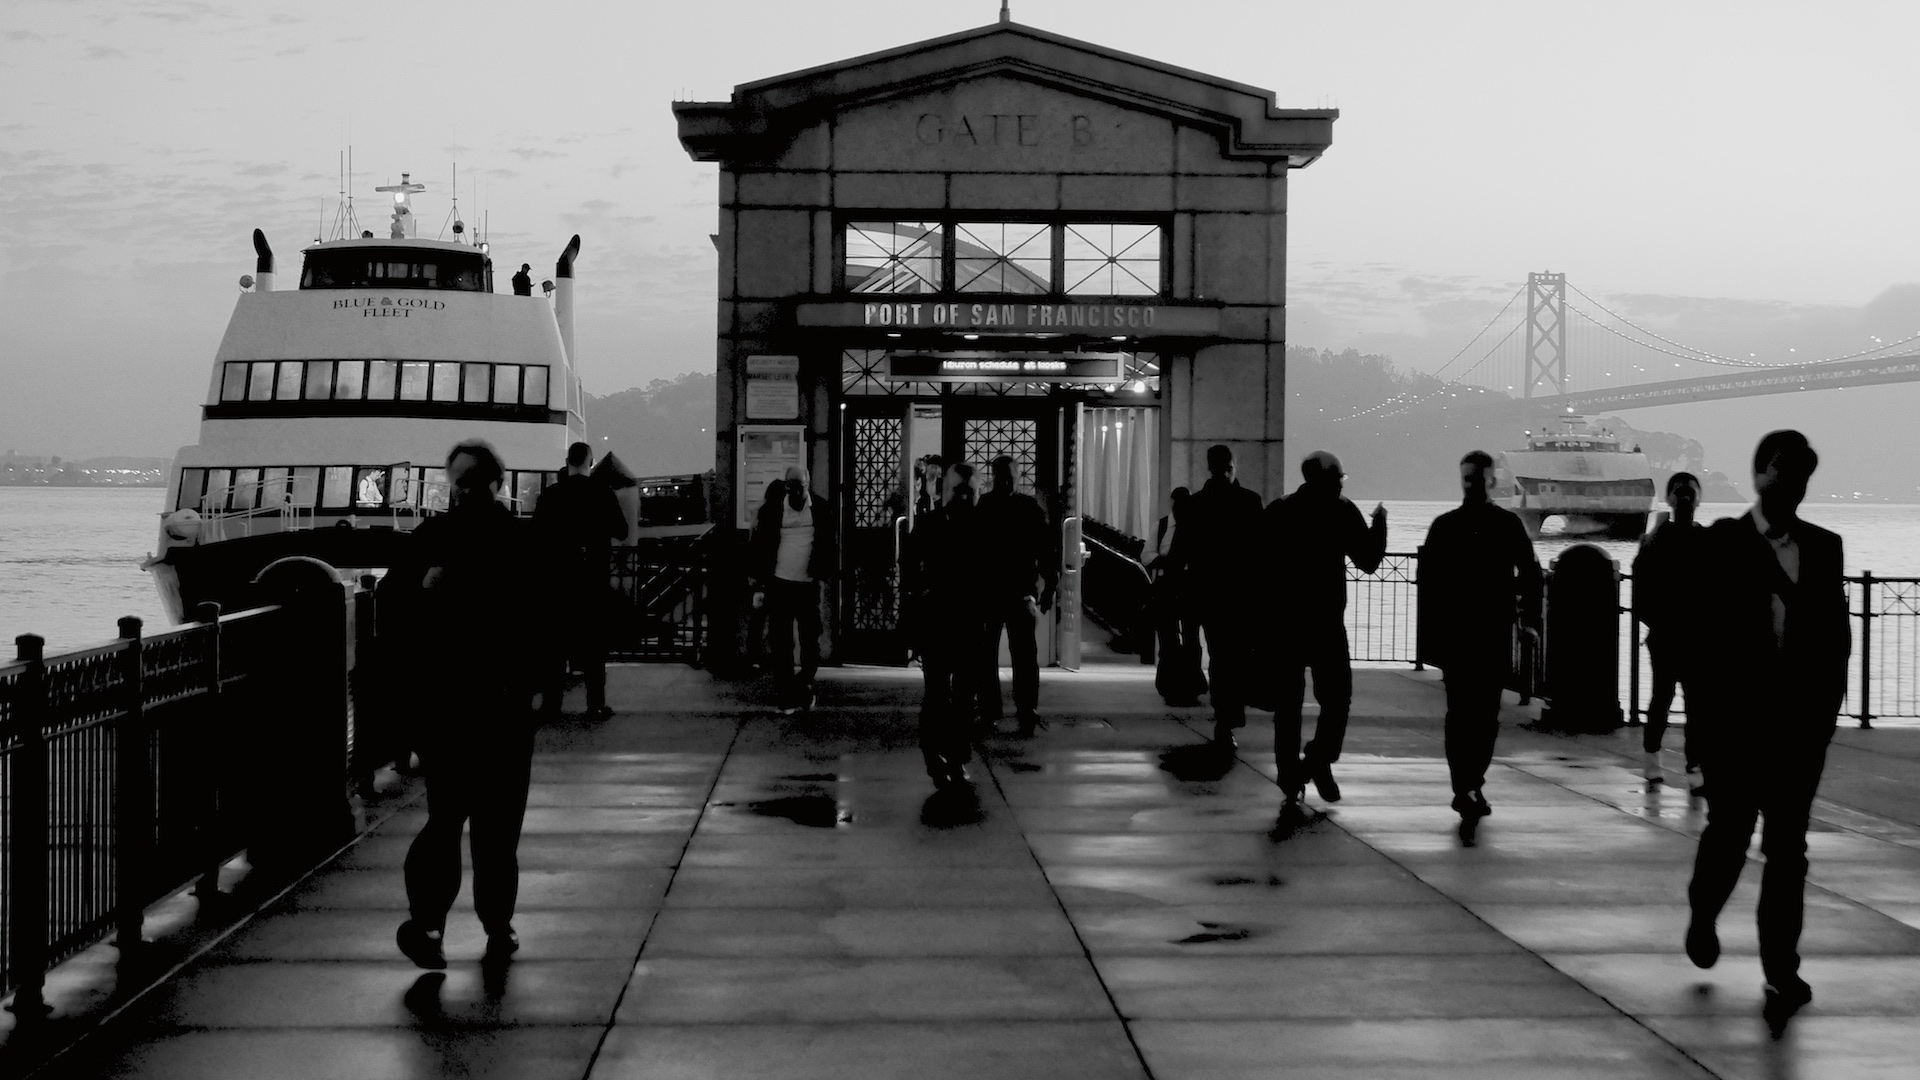 Golden Gate Ferry Terminal, San Francisco